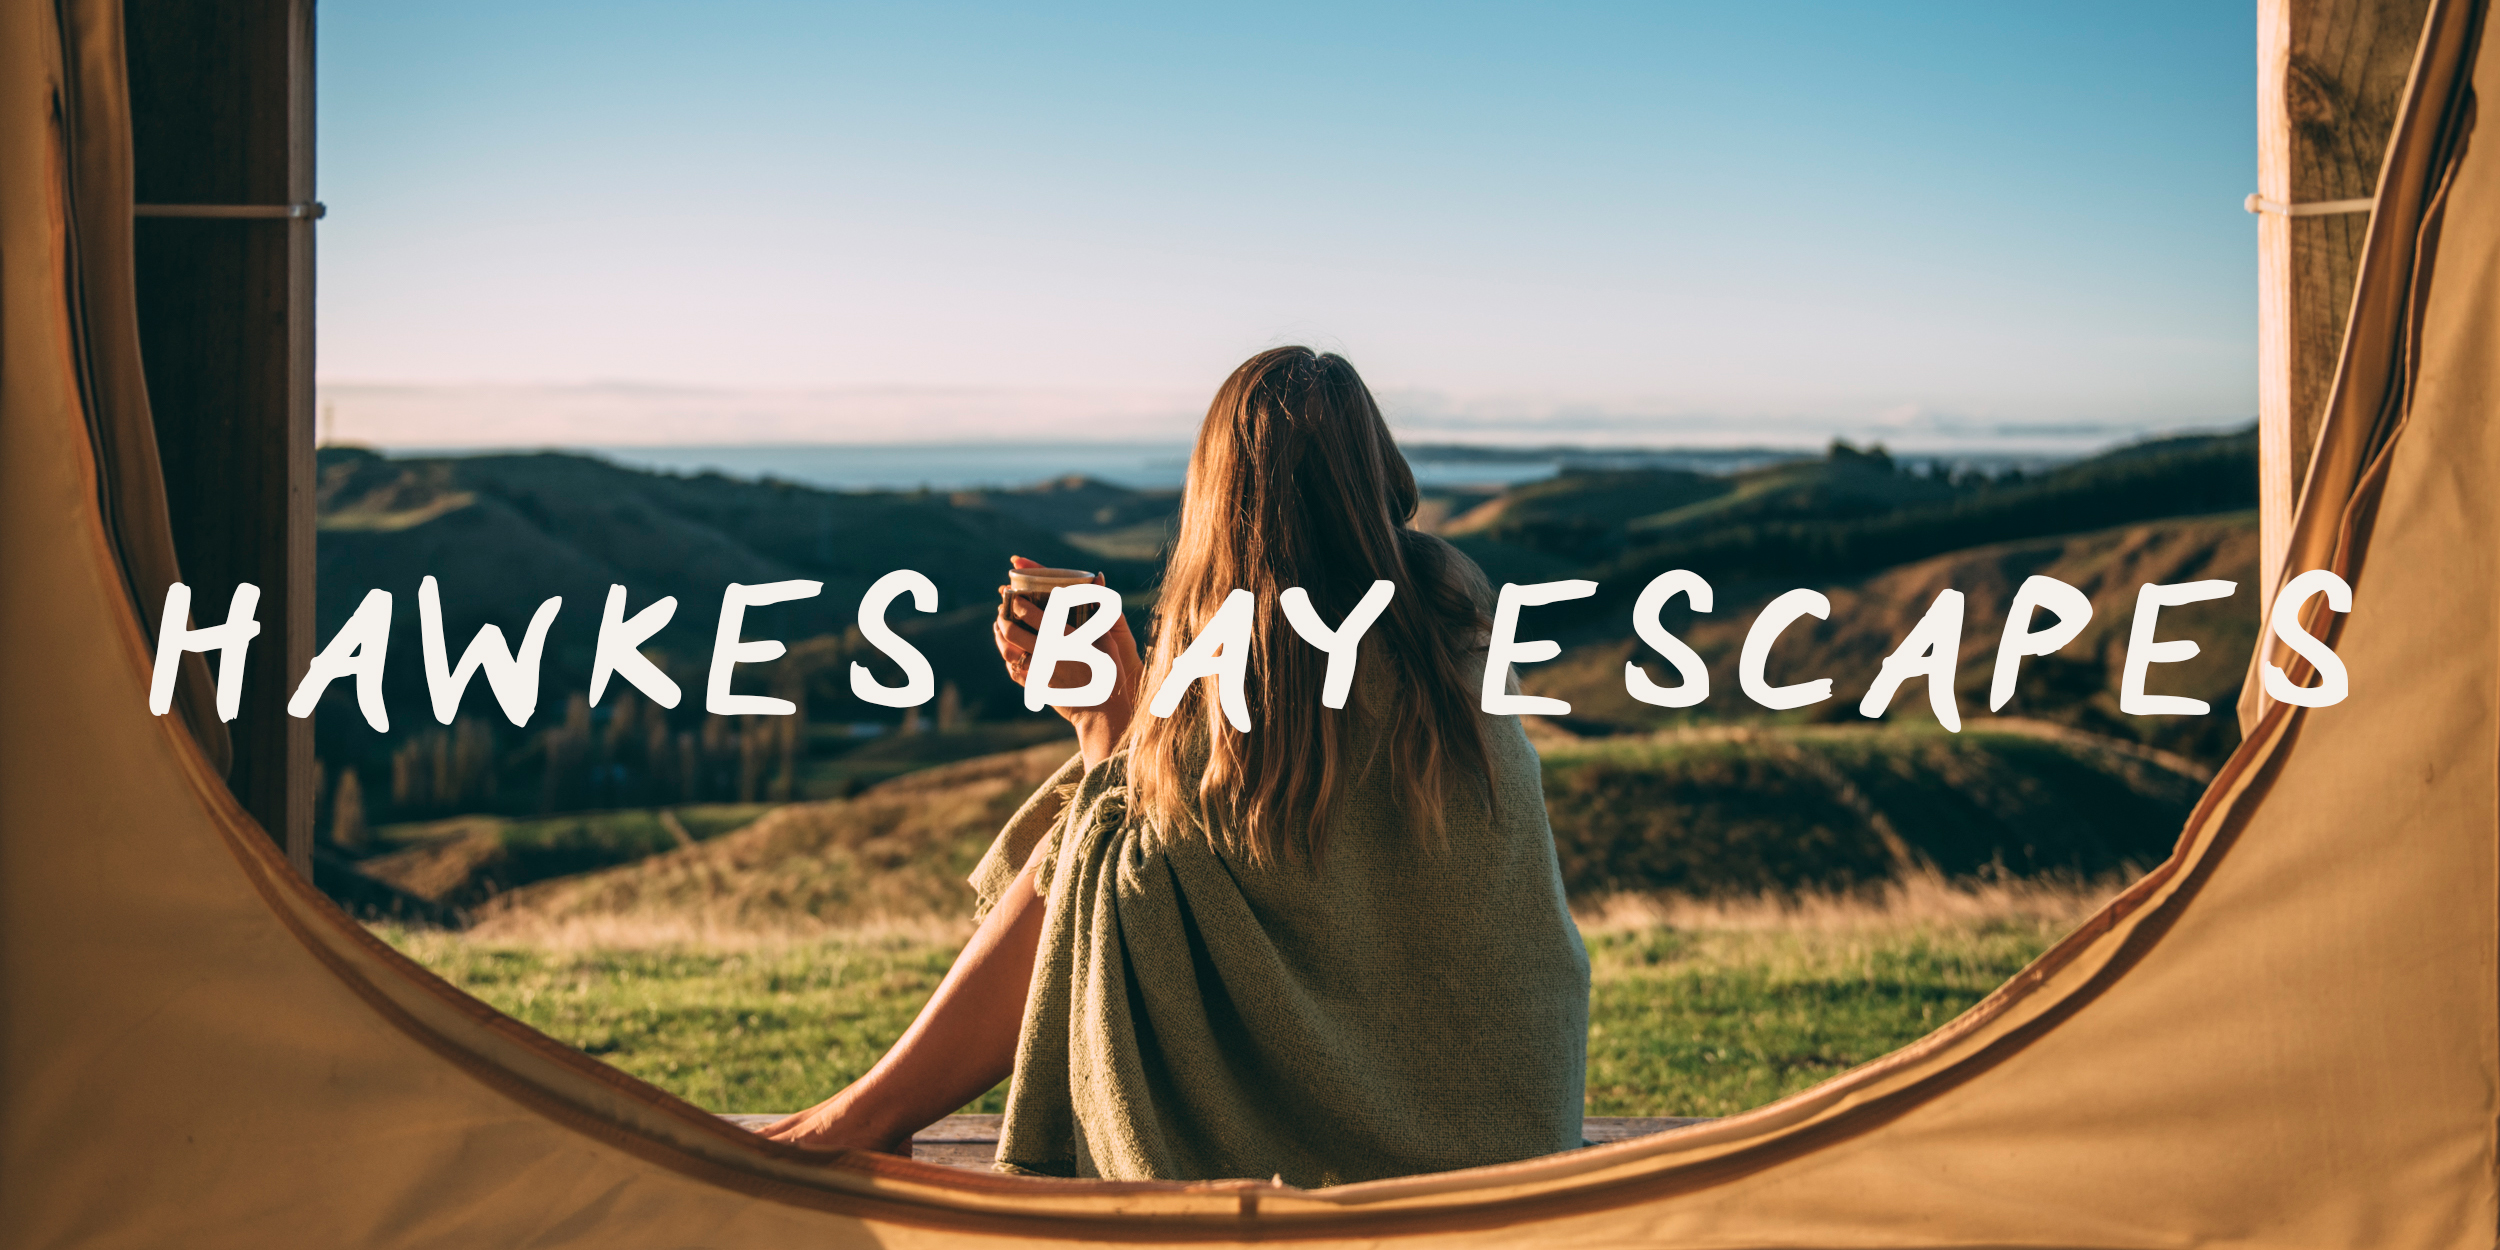 Hawkes-Bay-Escapes_Lola-Photography_BANNER.jpg